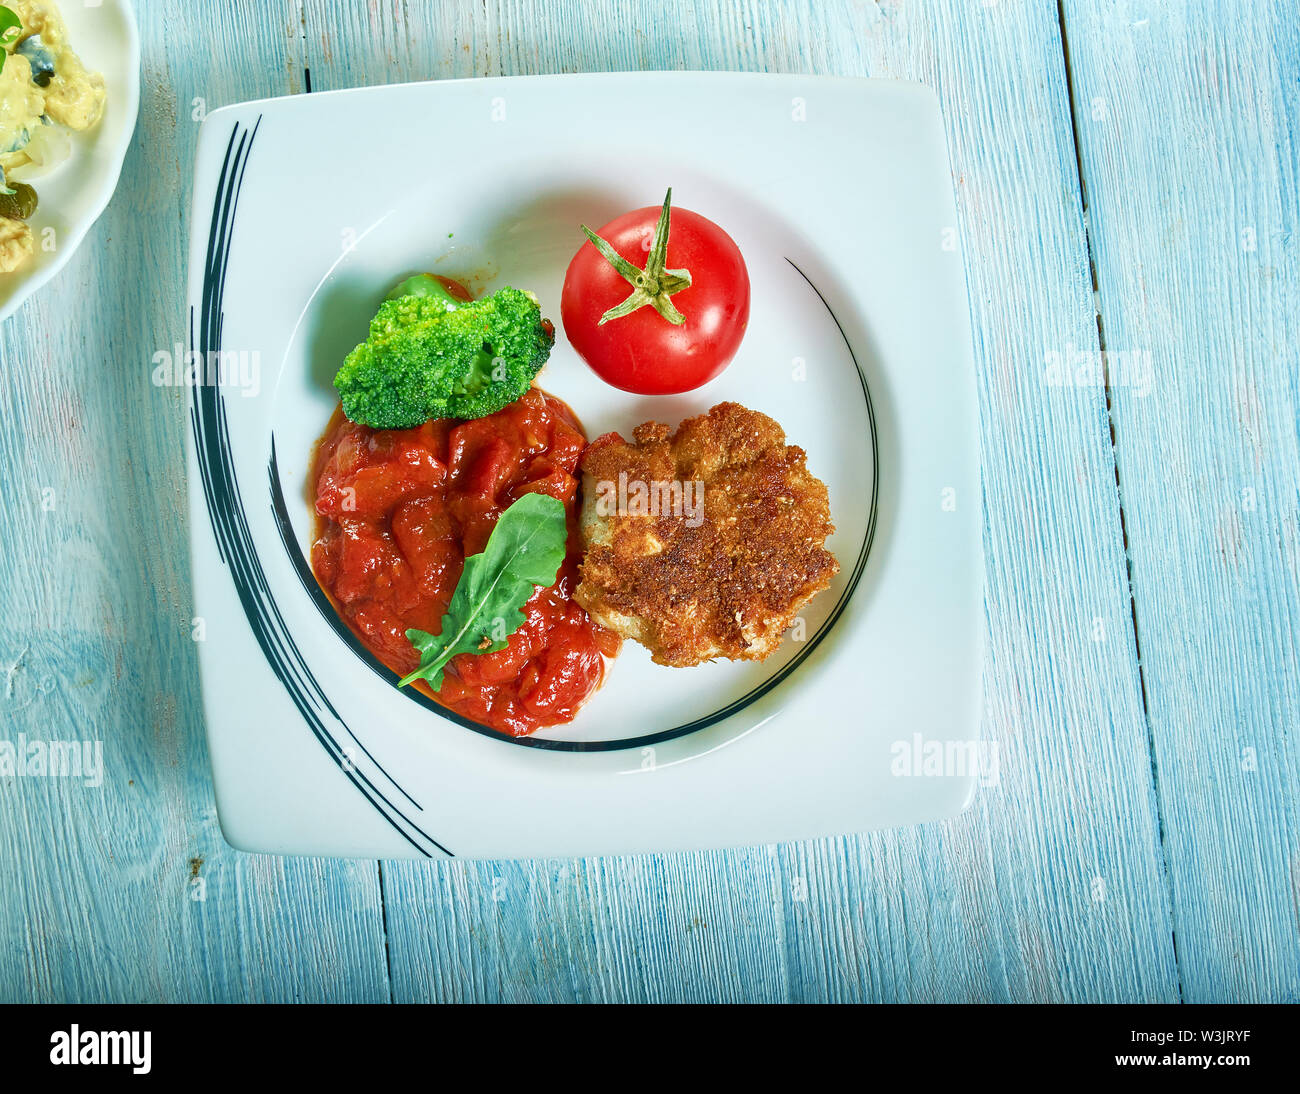 Fried cod with curry sauce and vegetables , close up - Stock Image